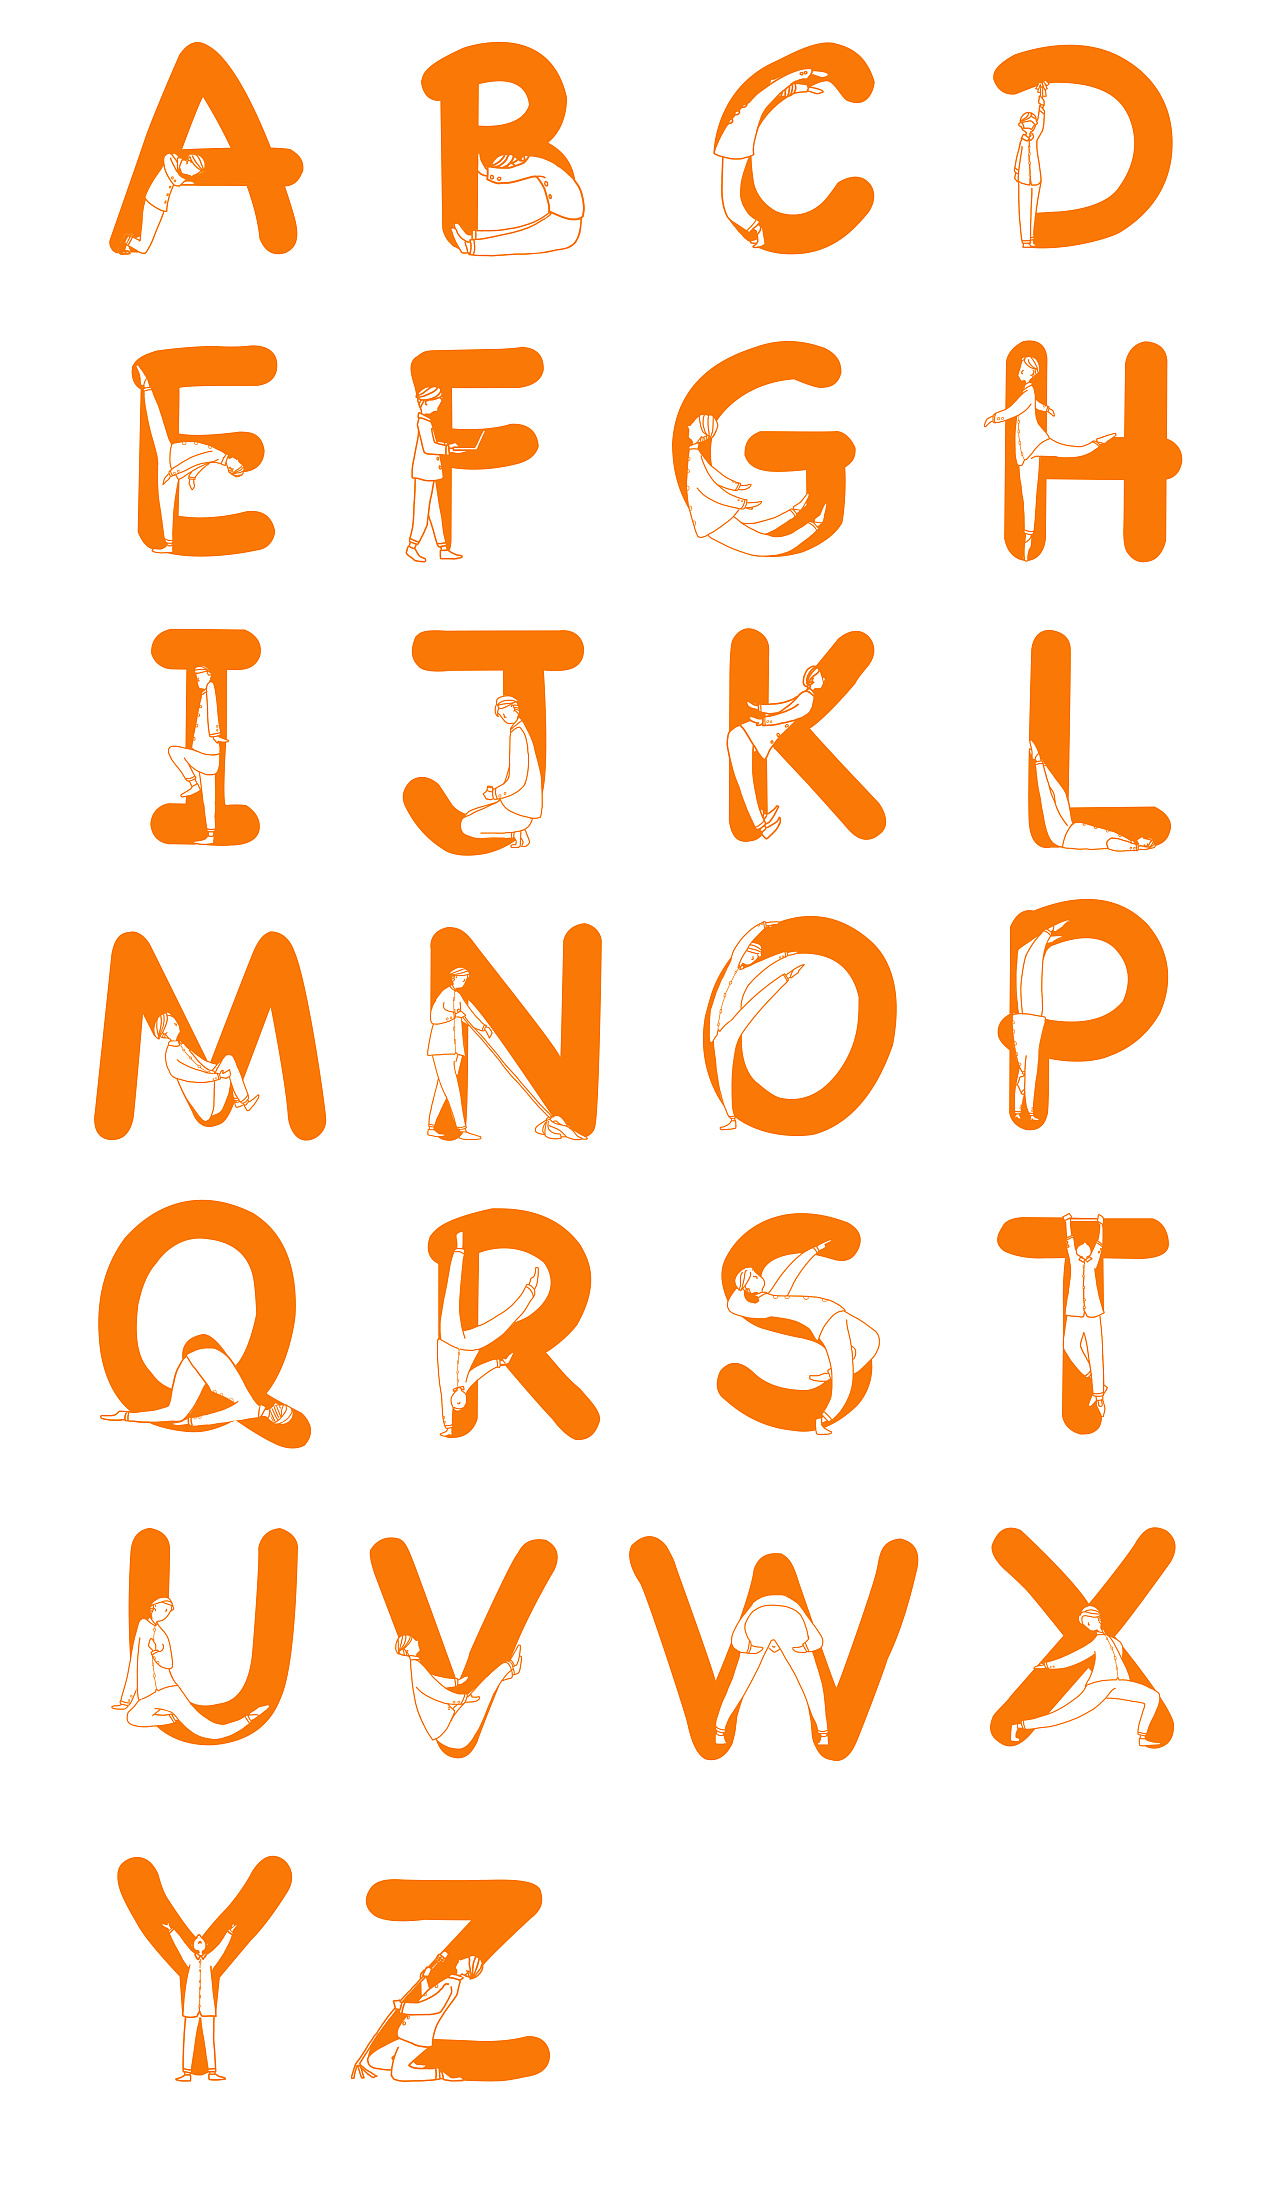 A group of fonts that combine the human body with English letters were designed on a whim.